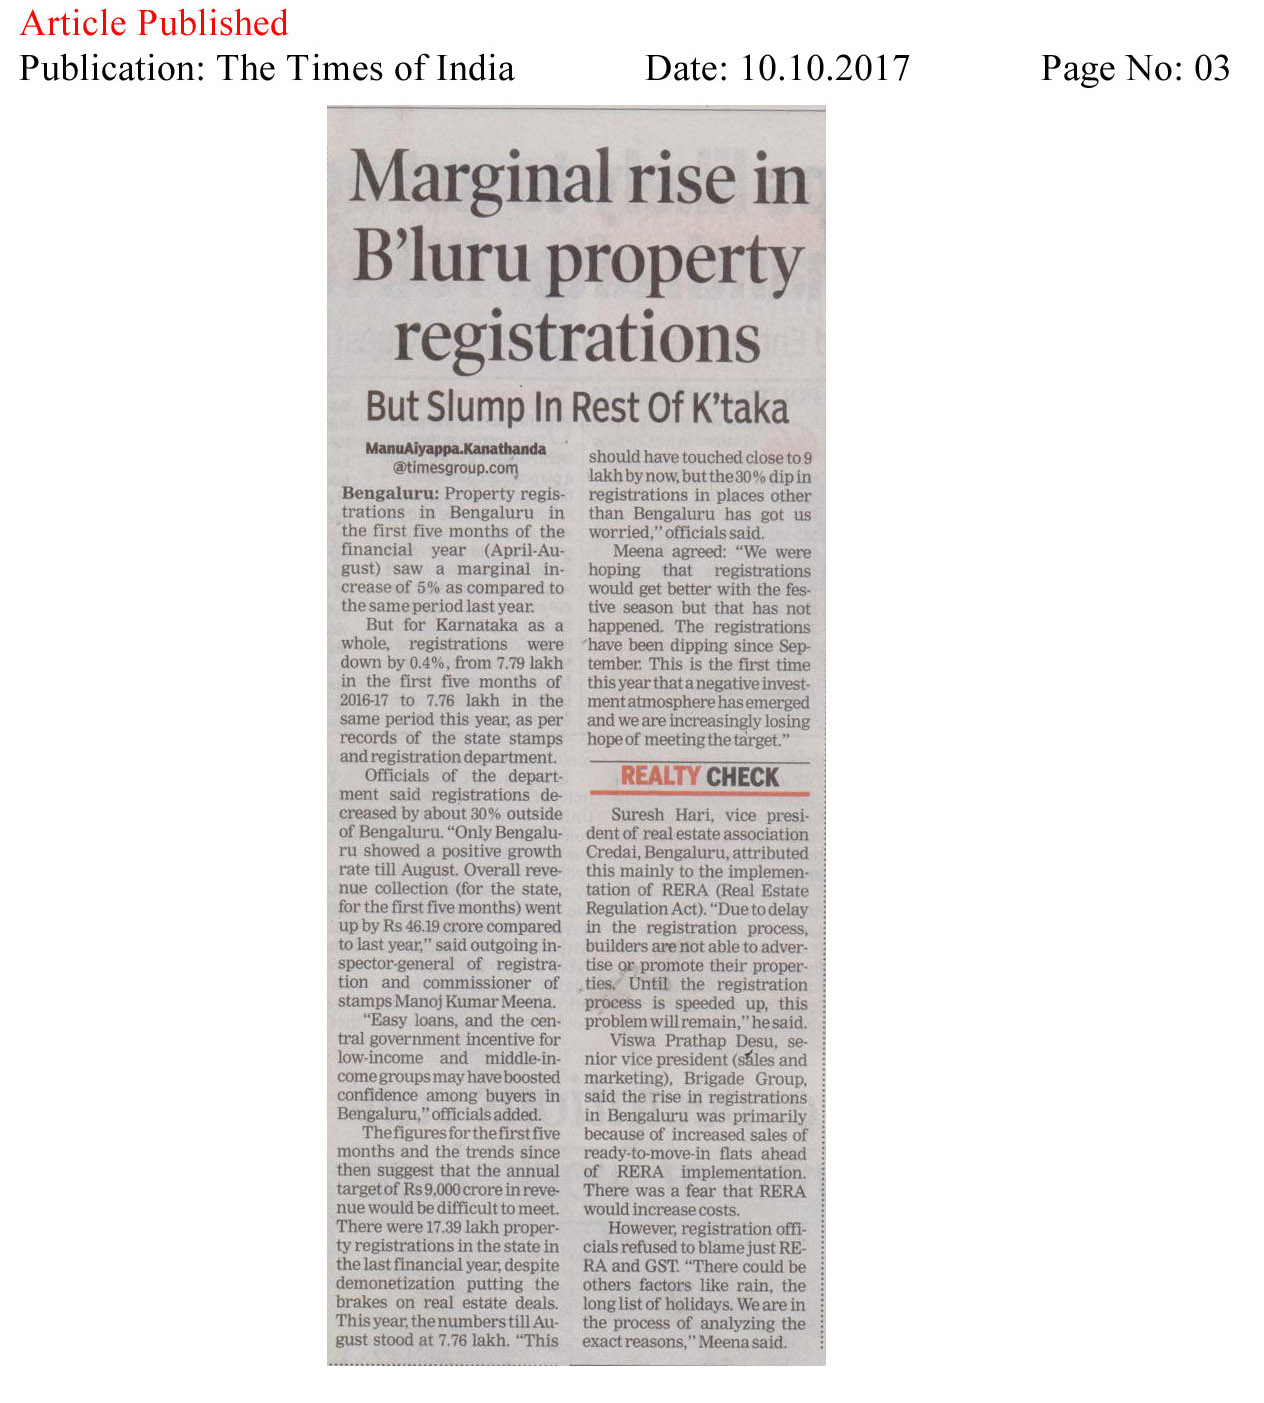 Marginal rise in the B'luru property registrations—The Times of India